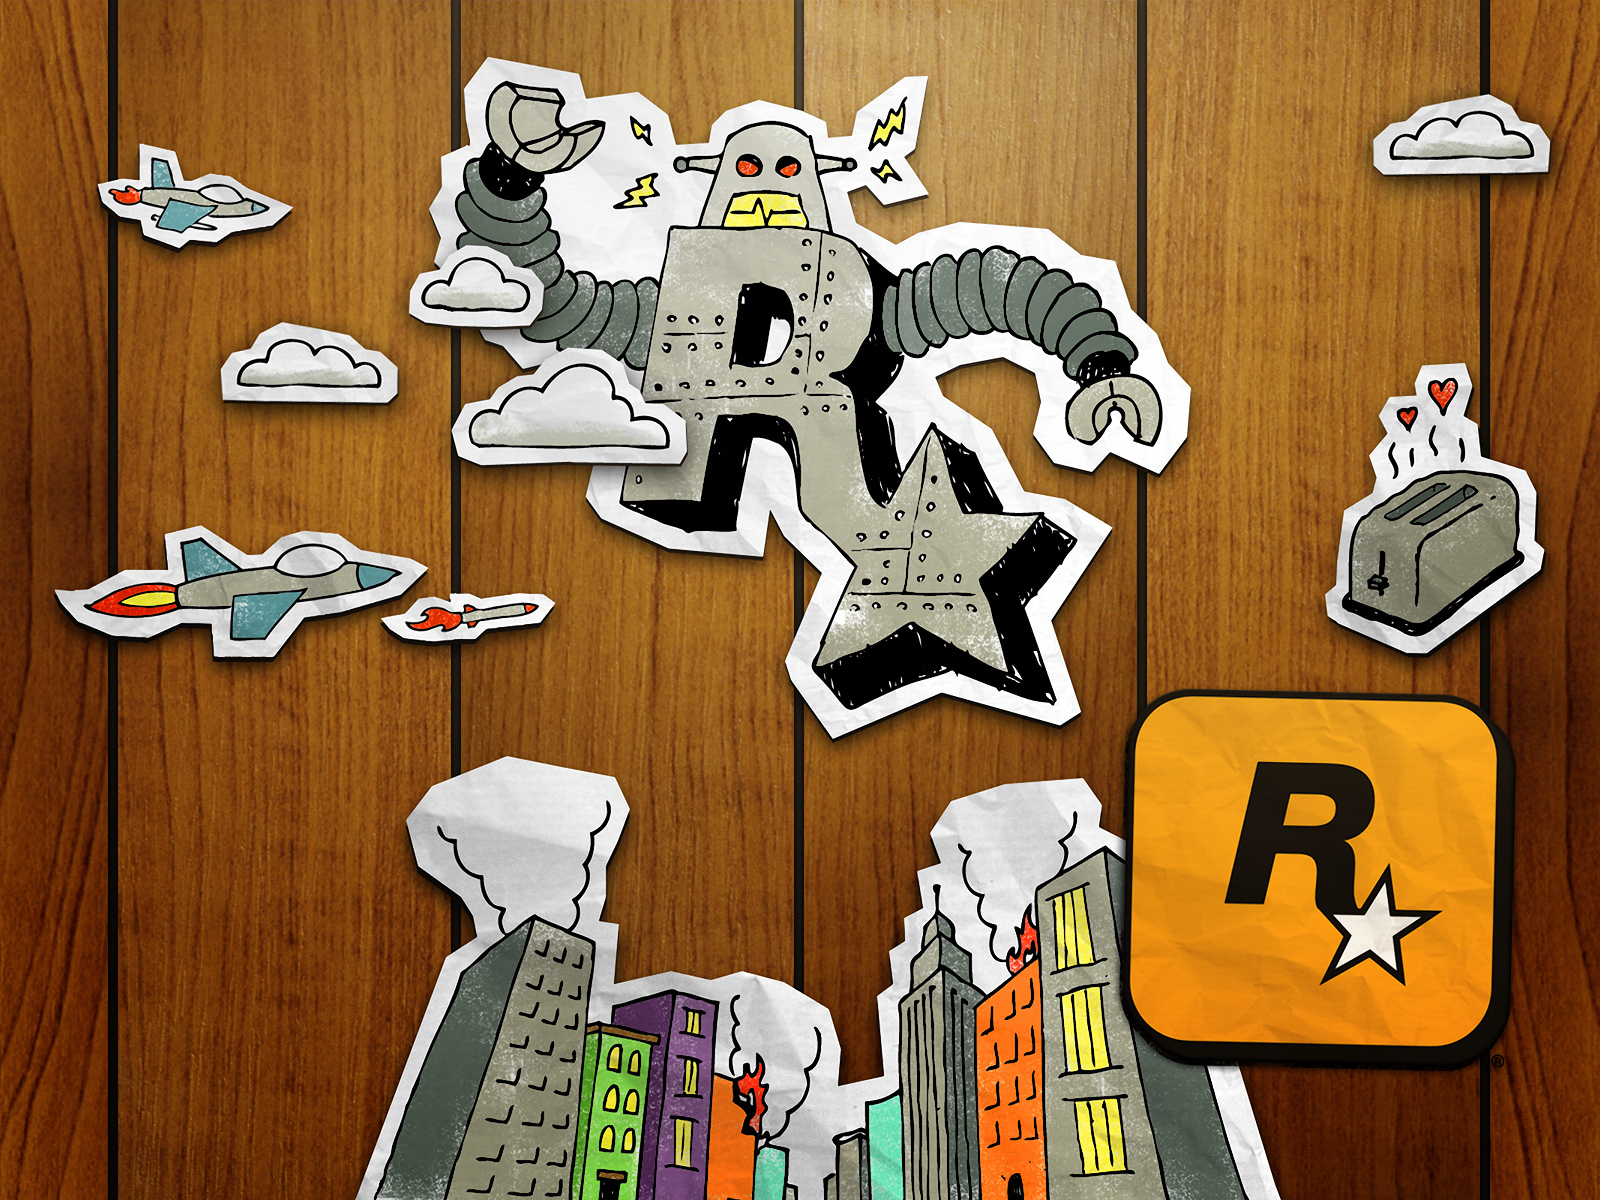 Stars Doodle rockstar games HD Wallpaper